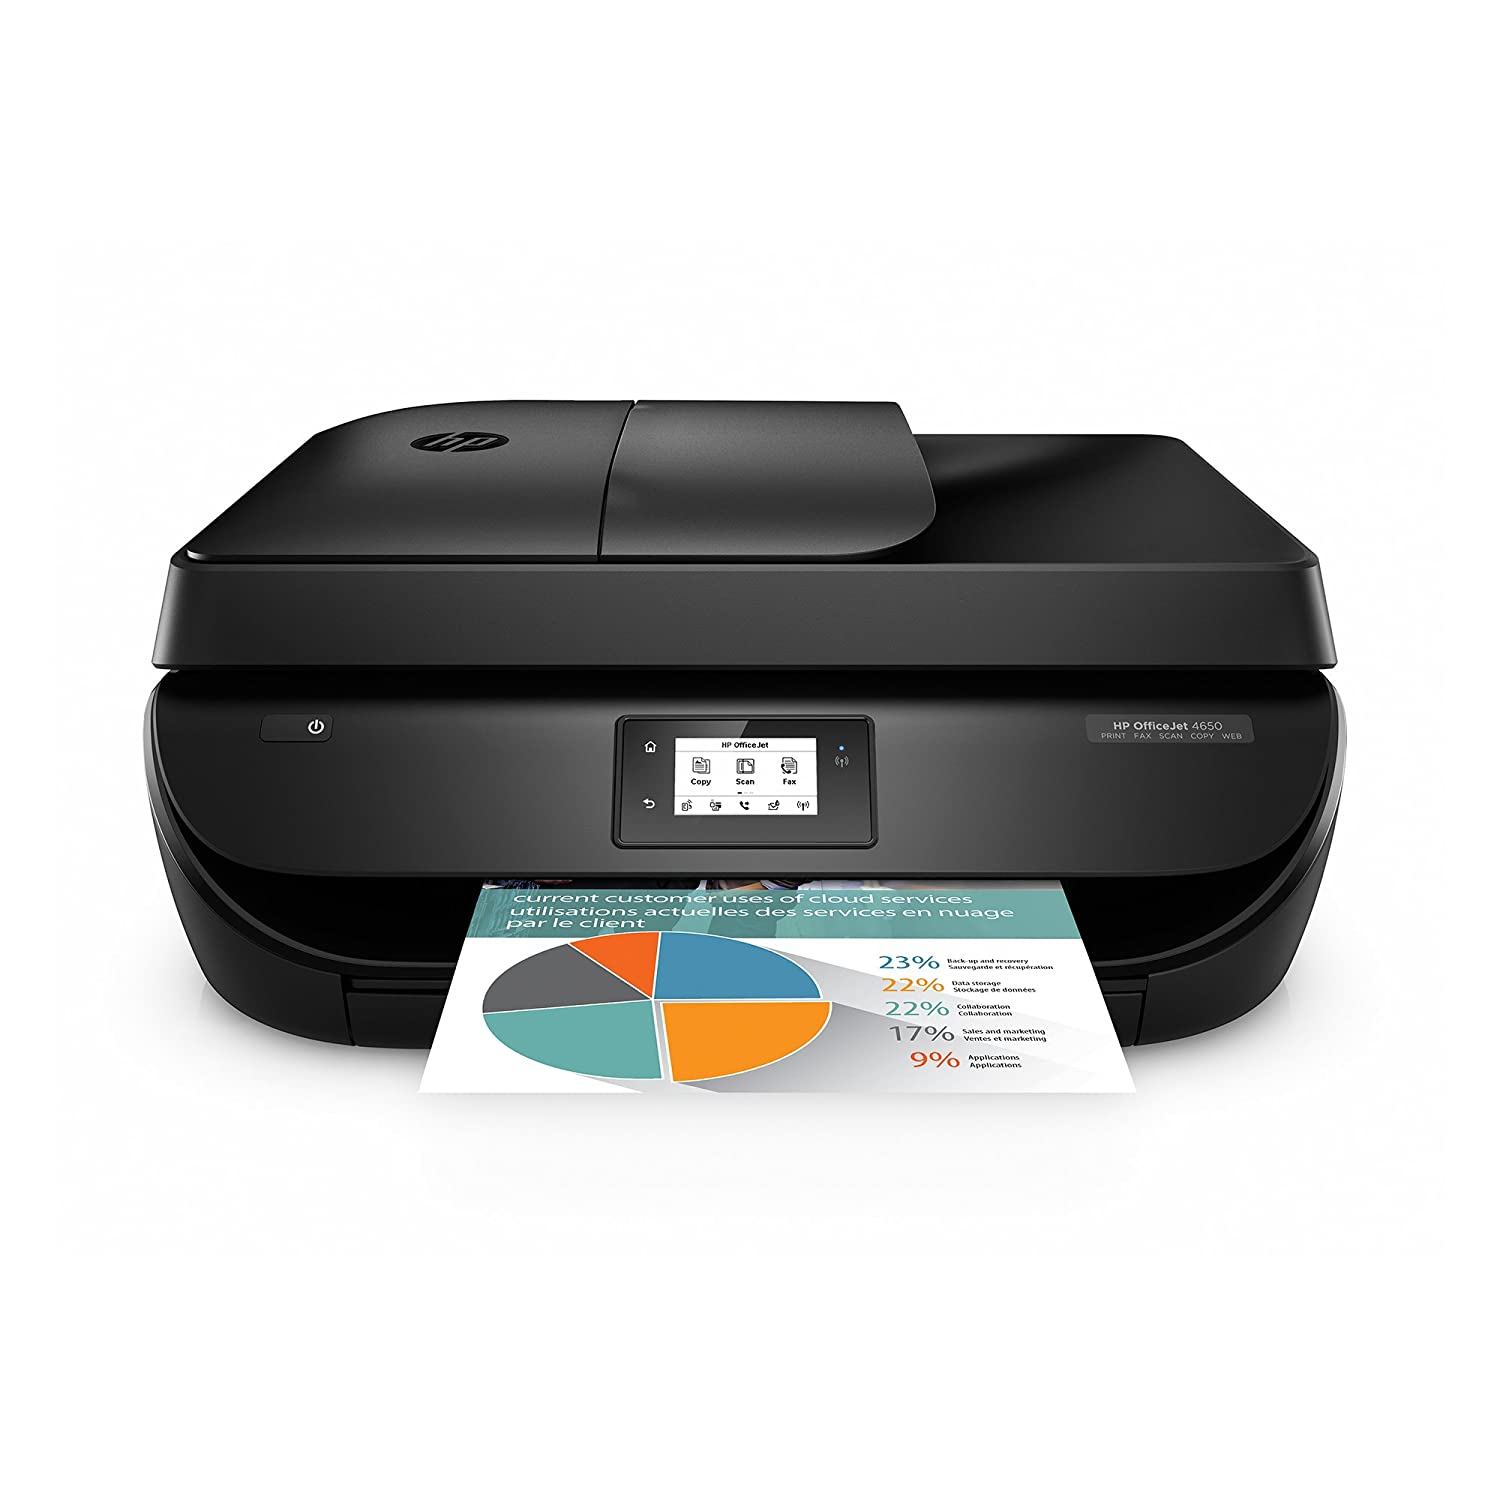 HP OfficeJet 4650 Photo Printer